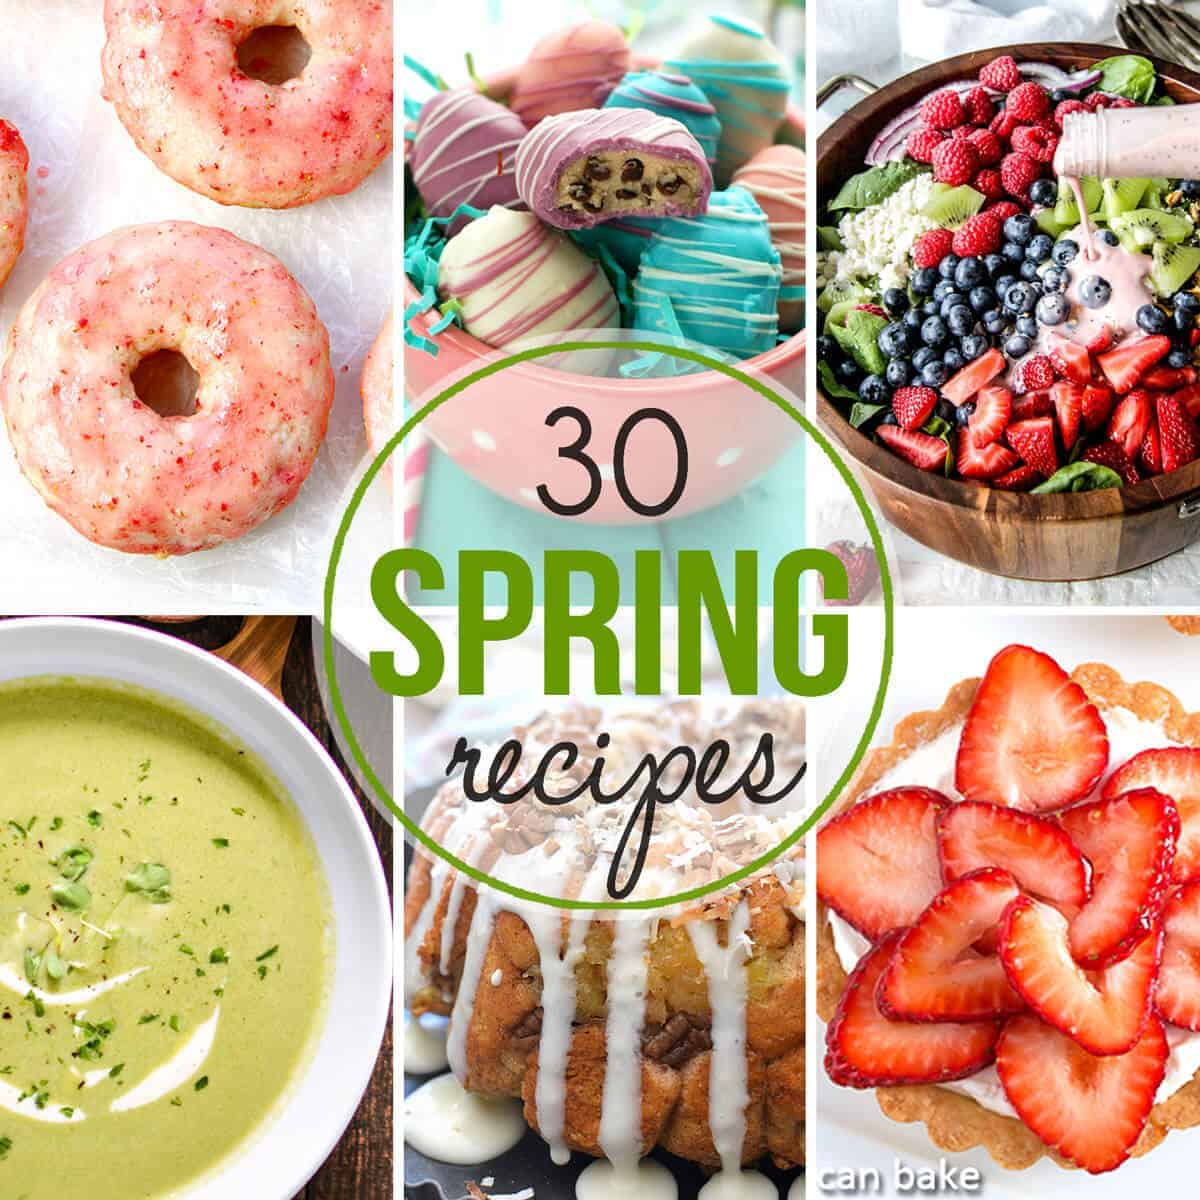 Over 30 Spring Recipes from appetizers, sides, main dishes to desserts!